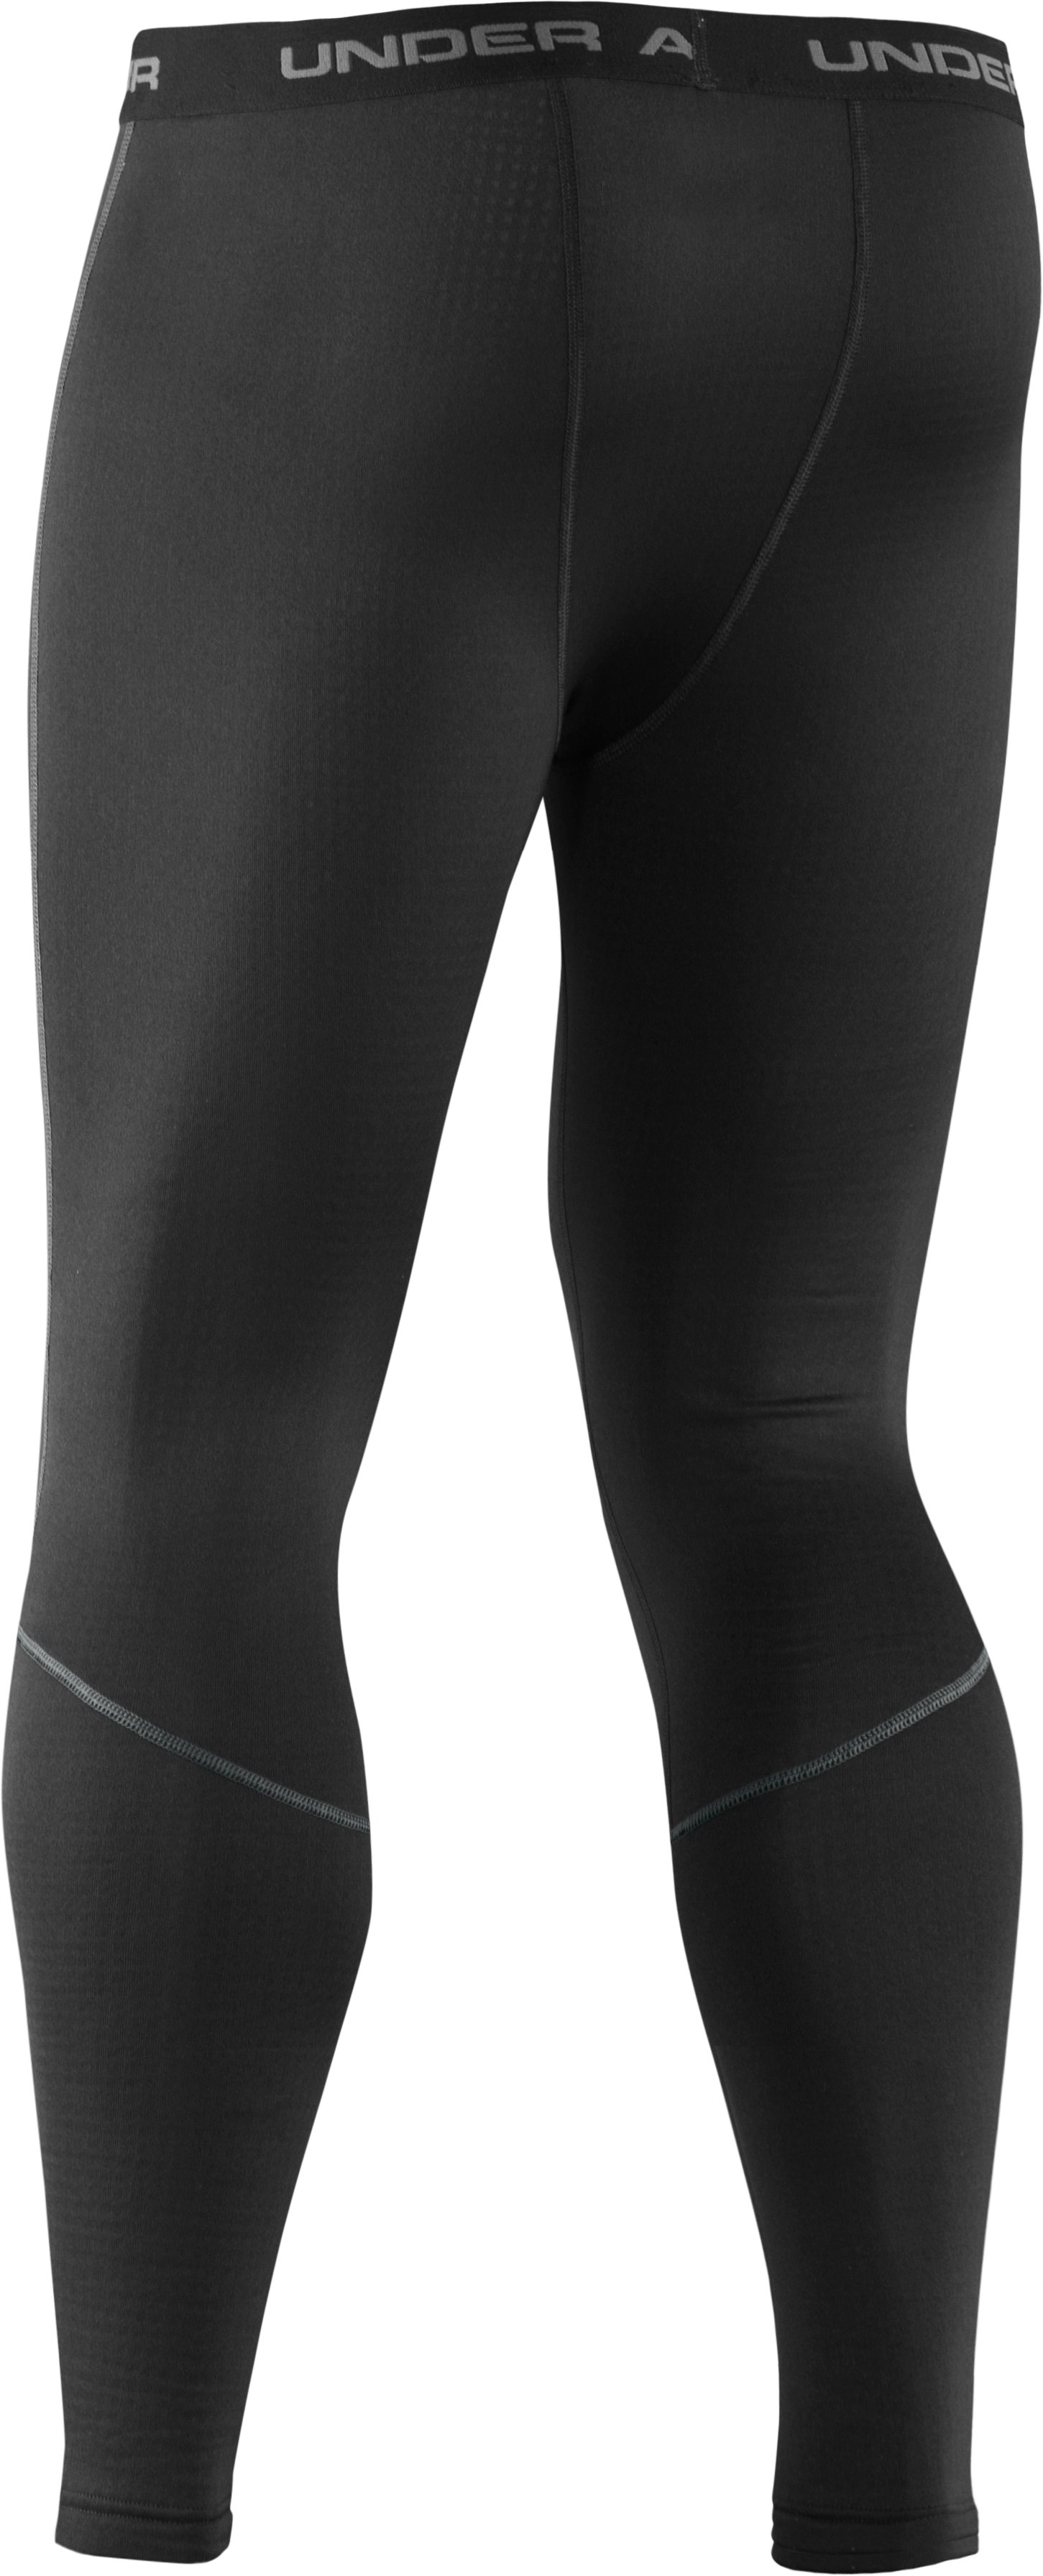 Men's UA Base™ 3.0 Leggings, Black